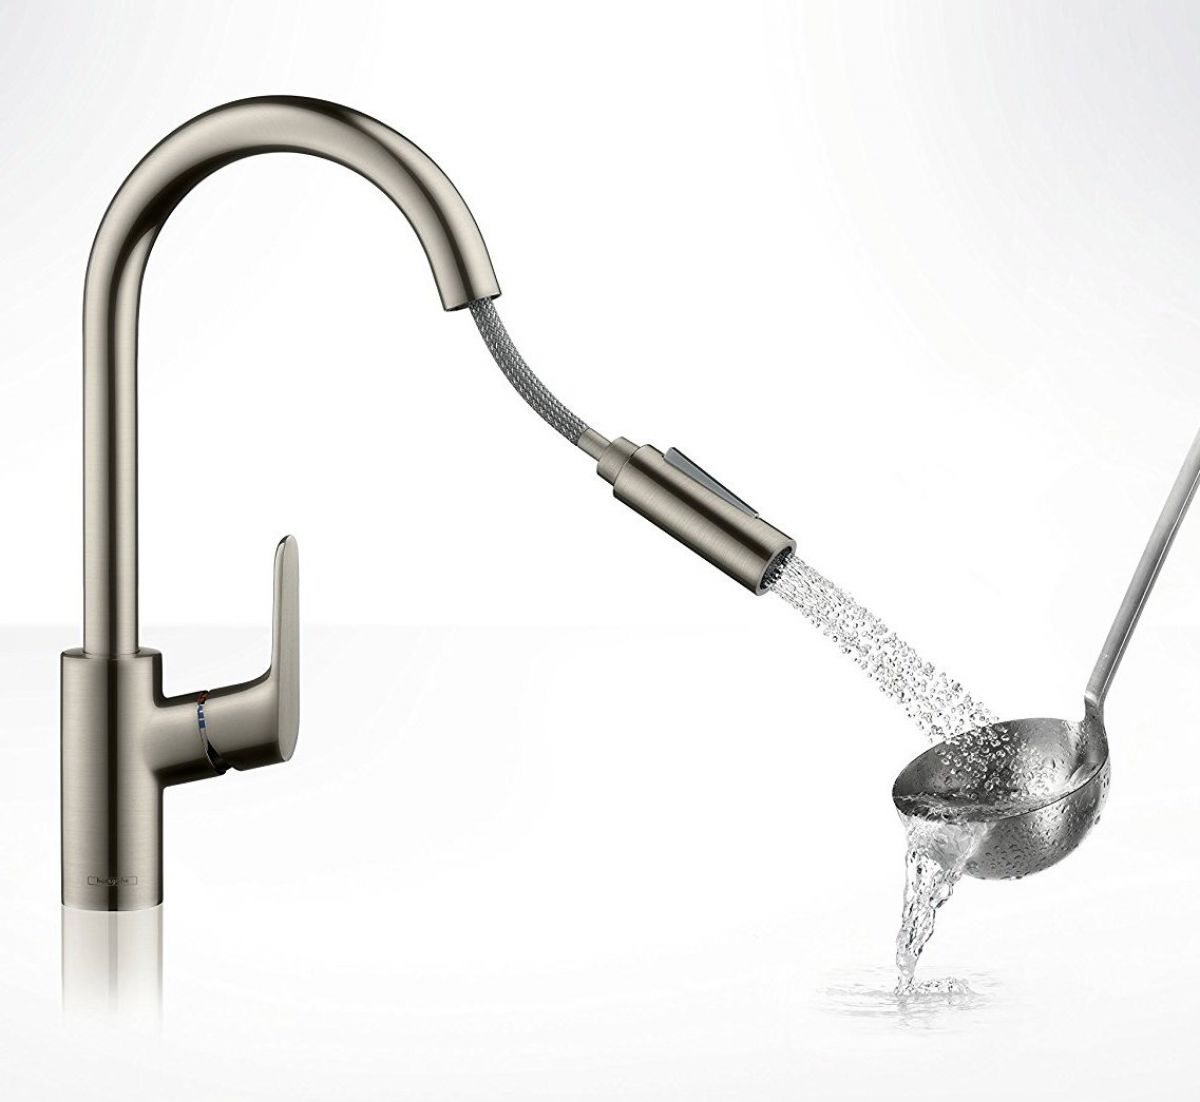 Hansgrohe Focus 240 Kitchen Mixer Tap With Pull Out Spray